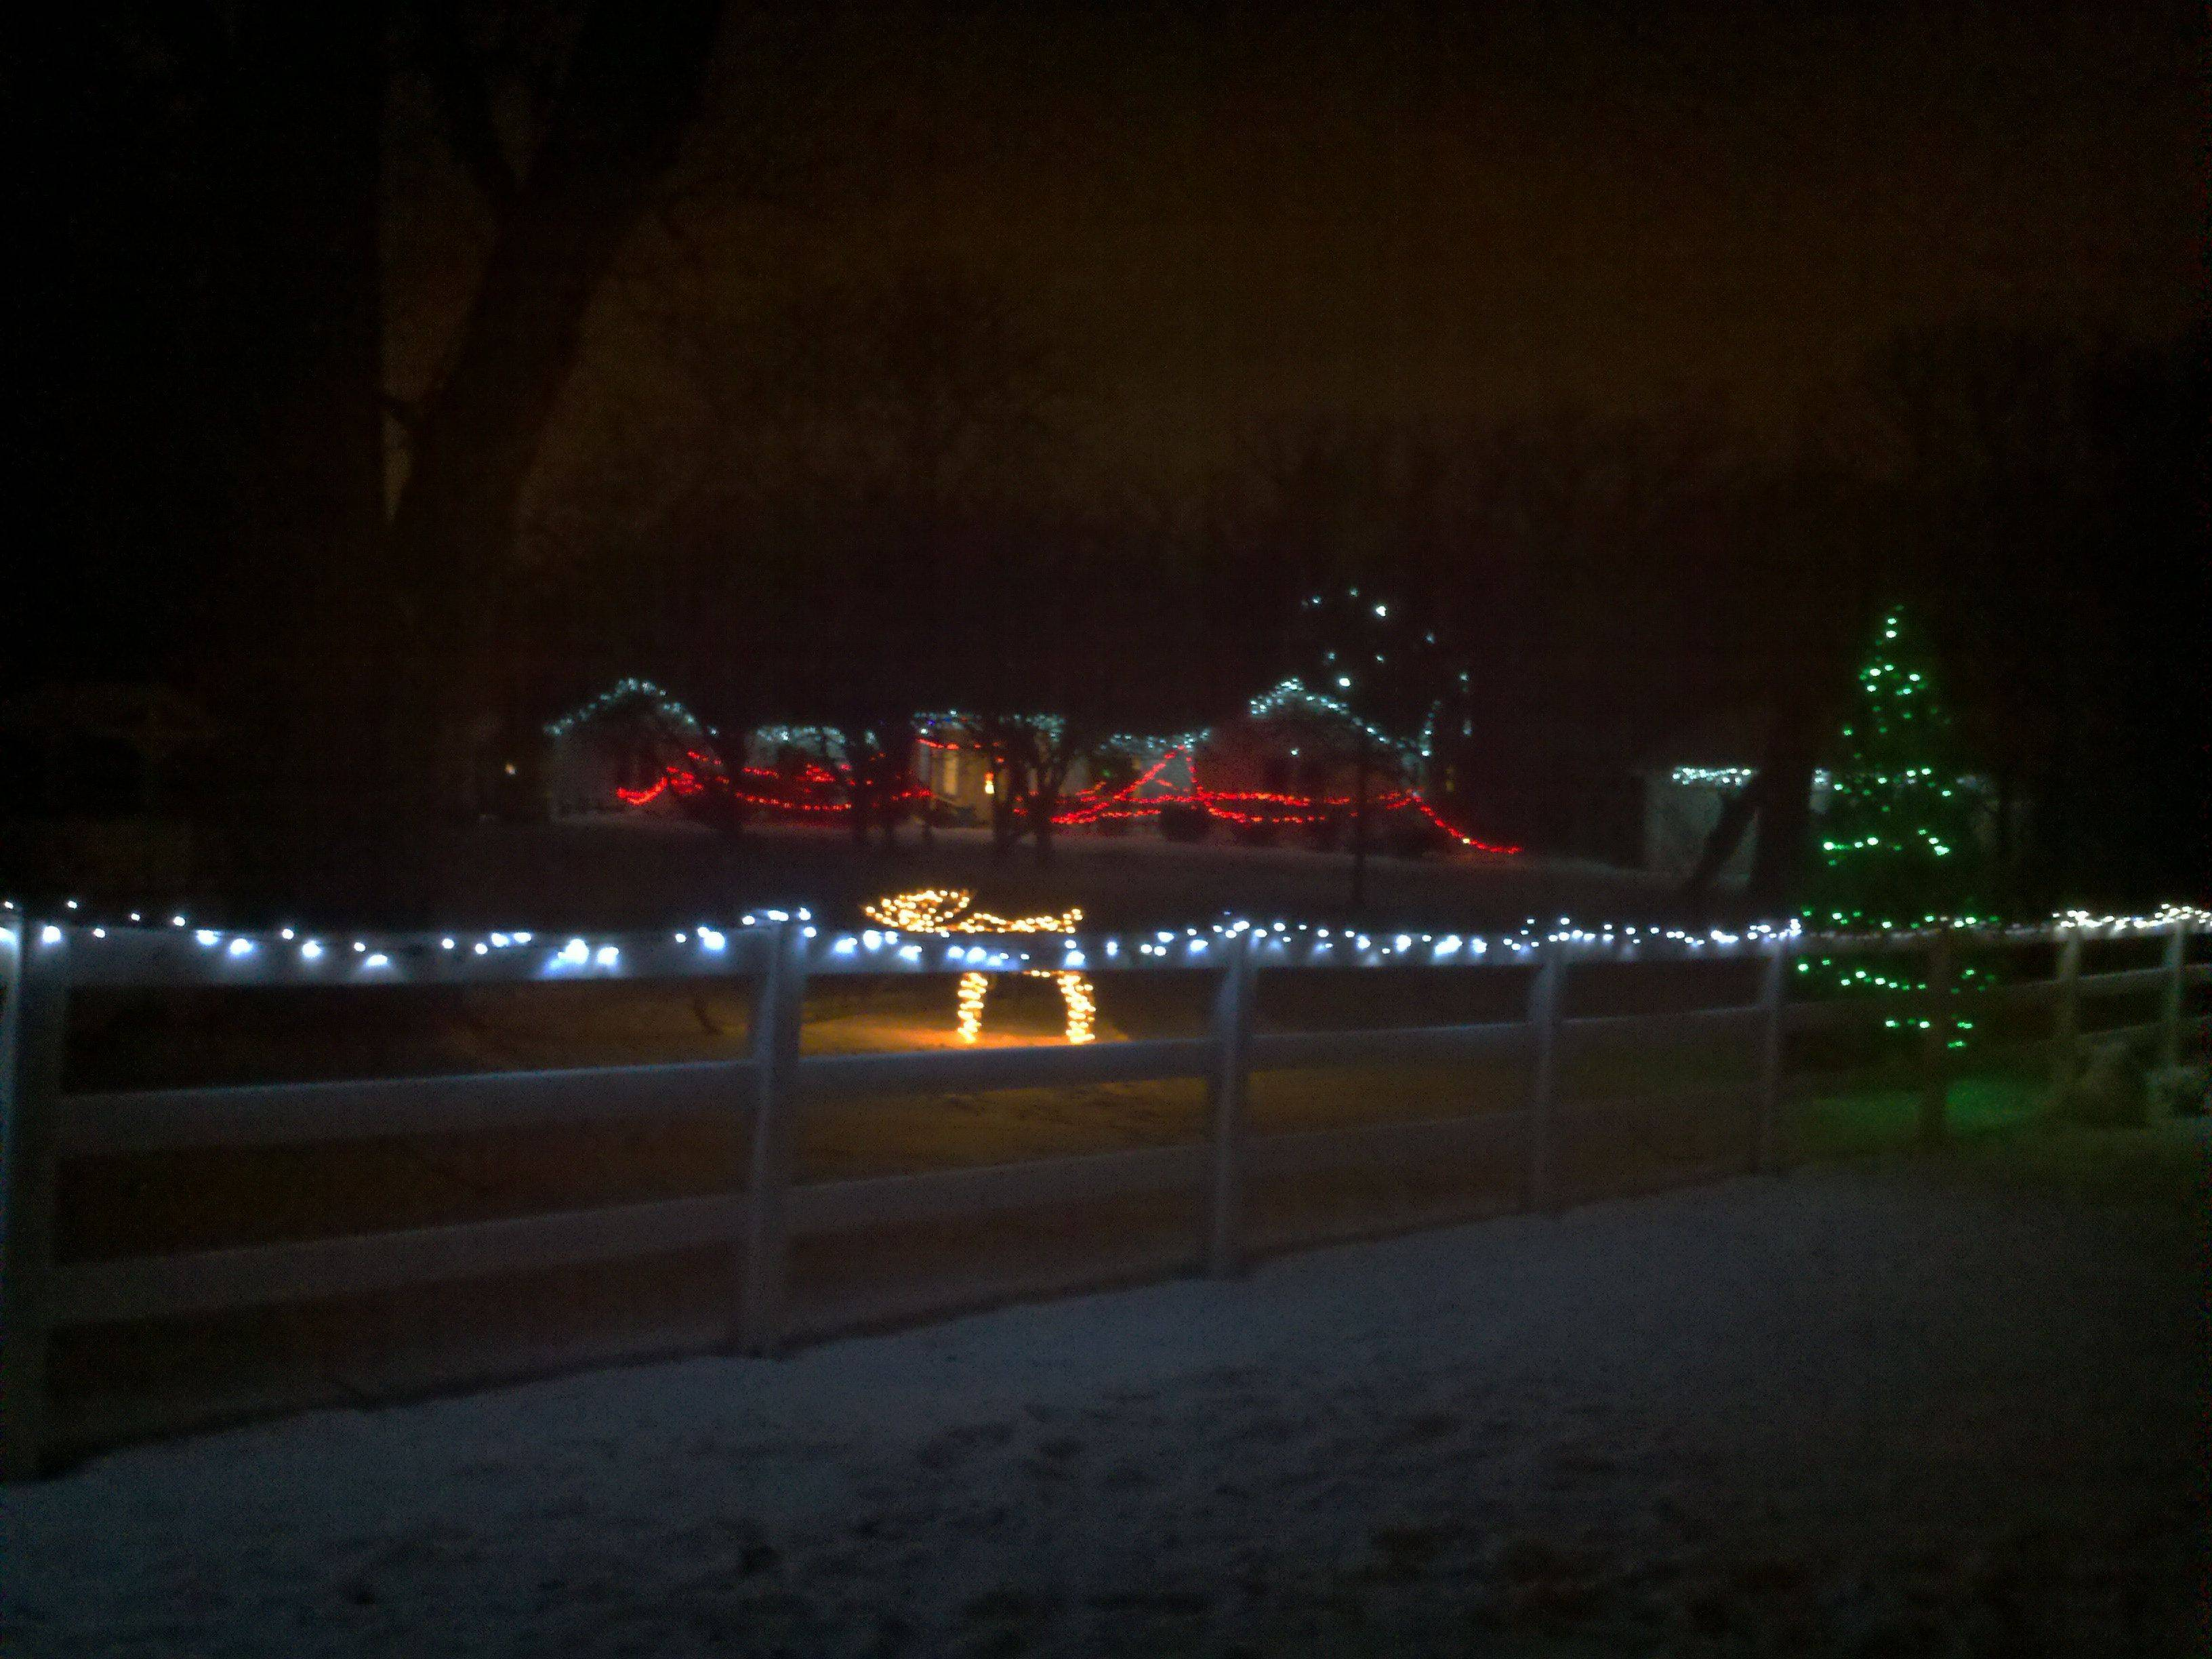 The lights stretch far and wide at Lisa Beckwith's home at 26W254 Wiesbrook Road in Wheaton.